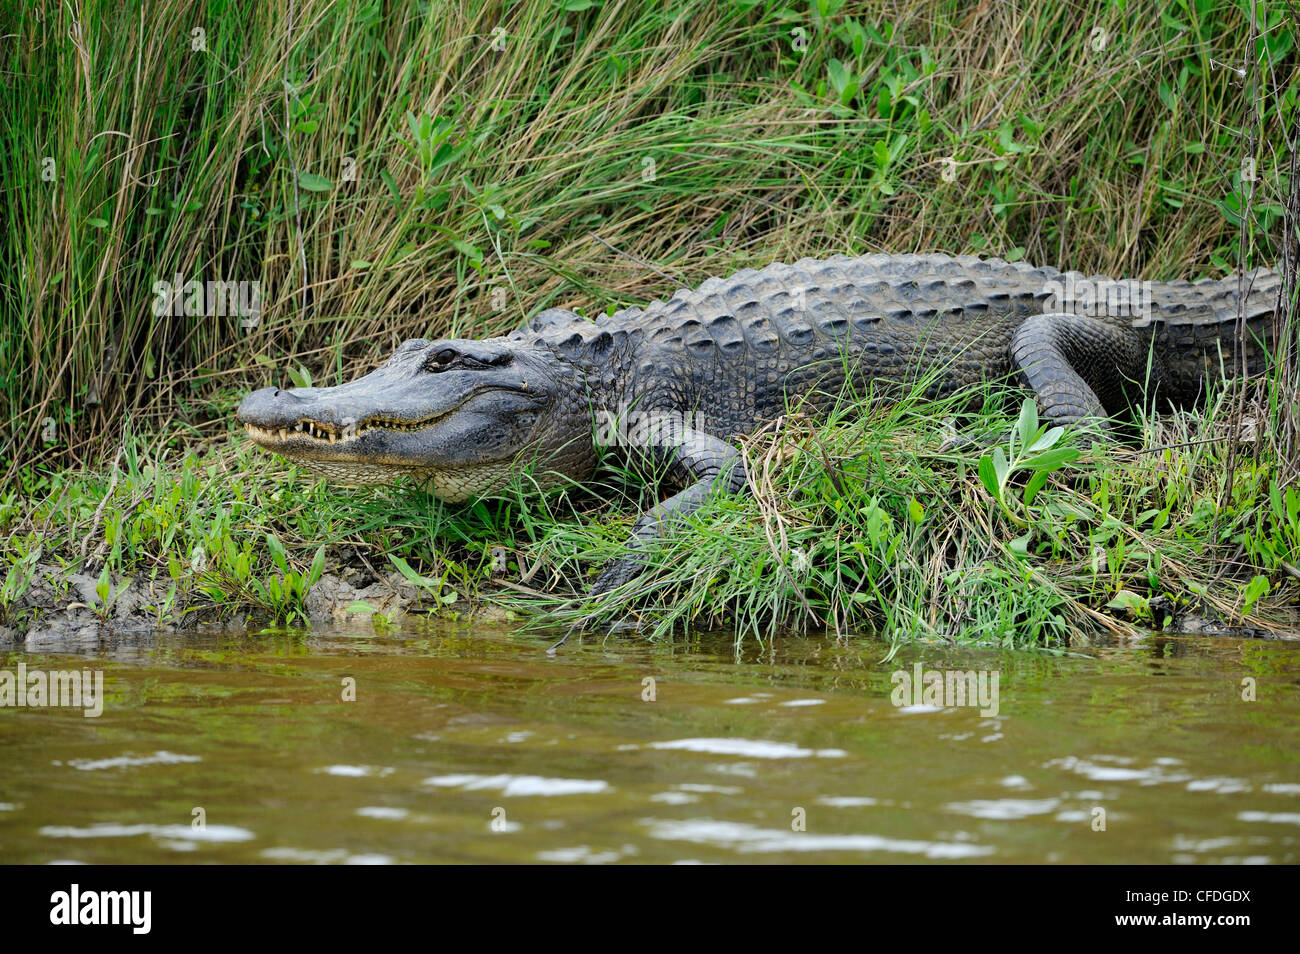 Alligator at Brazos Bend State Park, Texas, United States of America - Stock Image